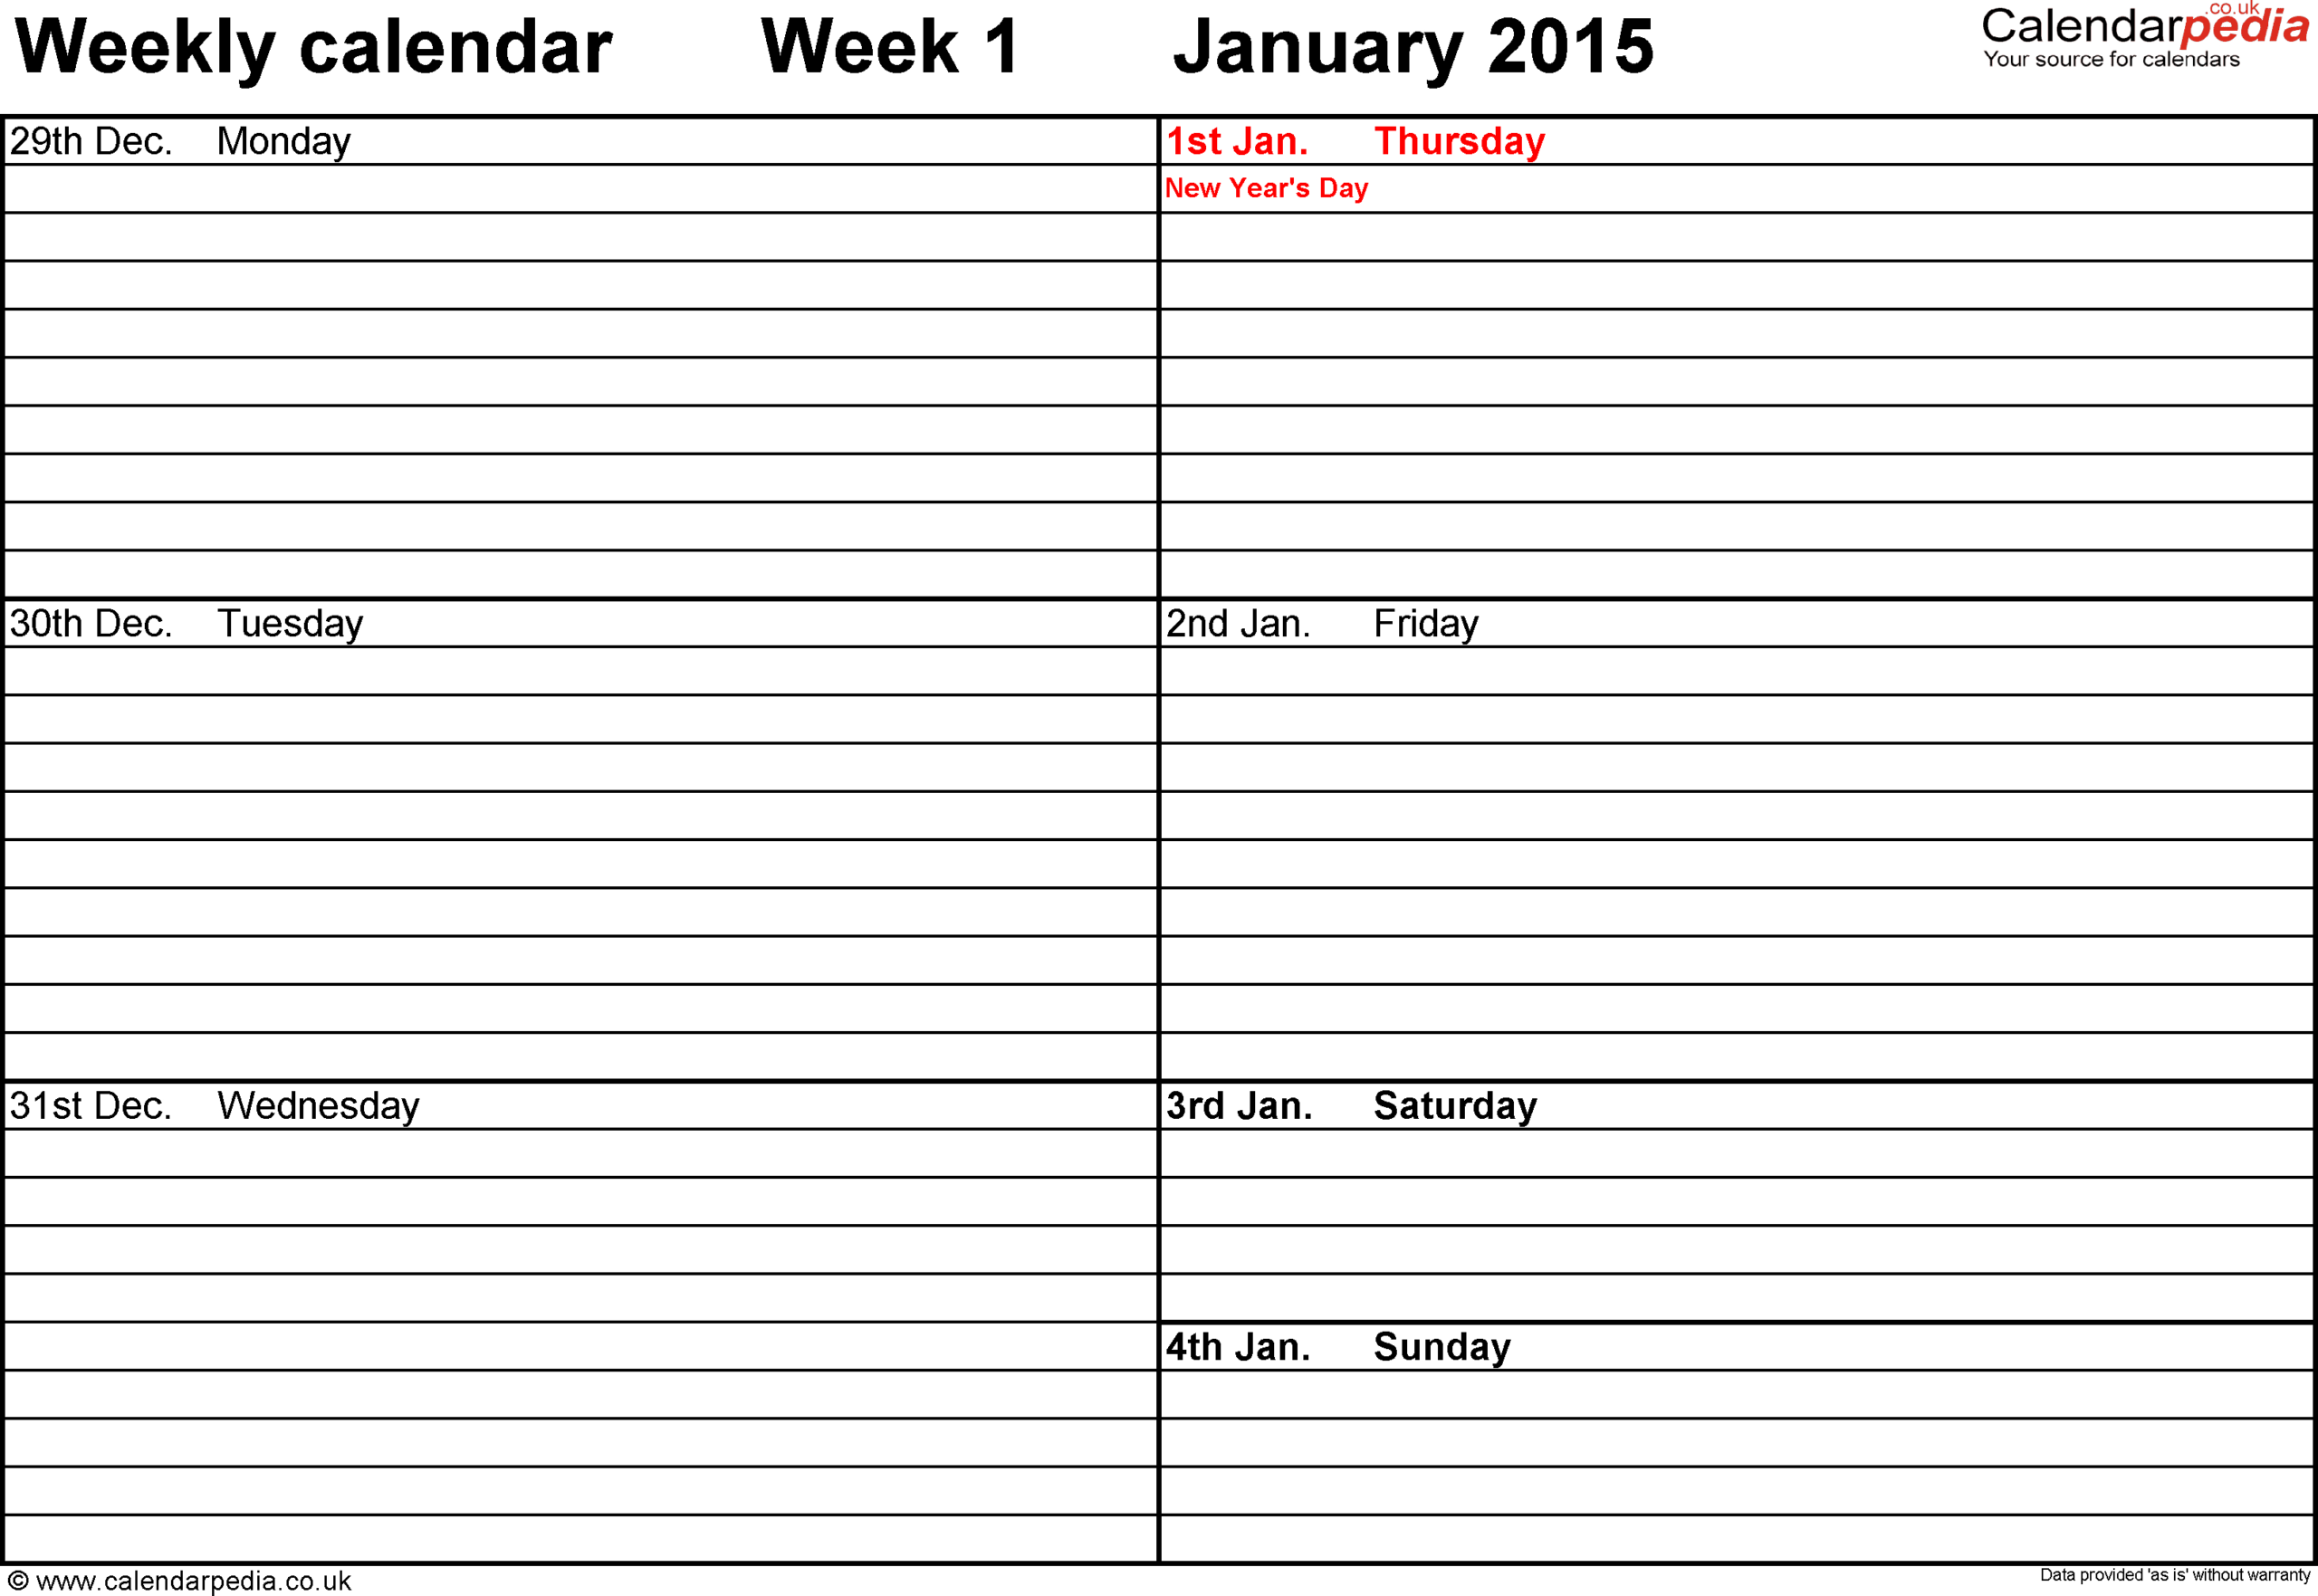 Weekly Calendar 2015 Uk - Free Printable Templates For Excel